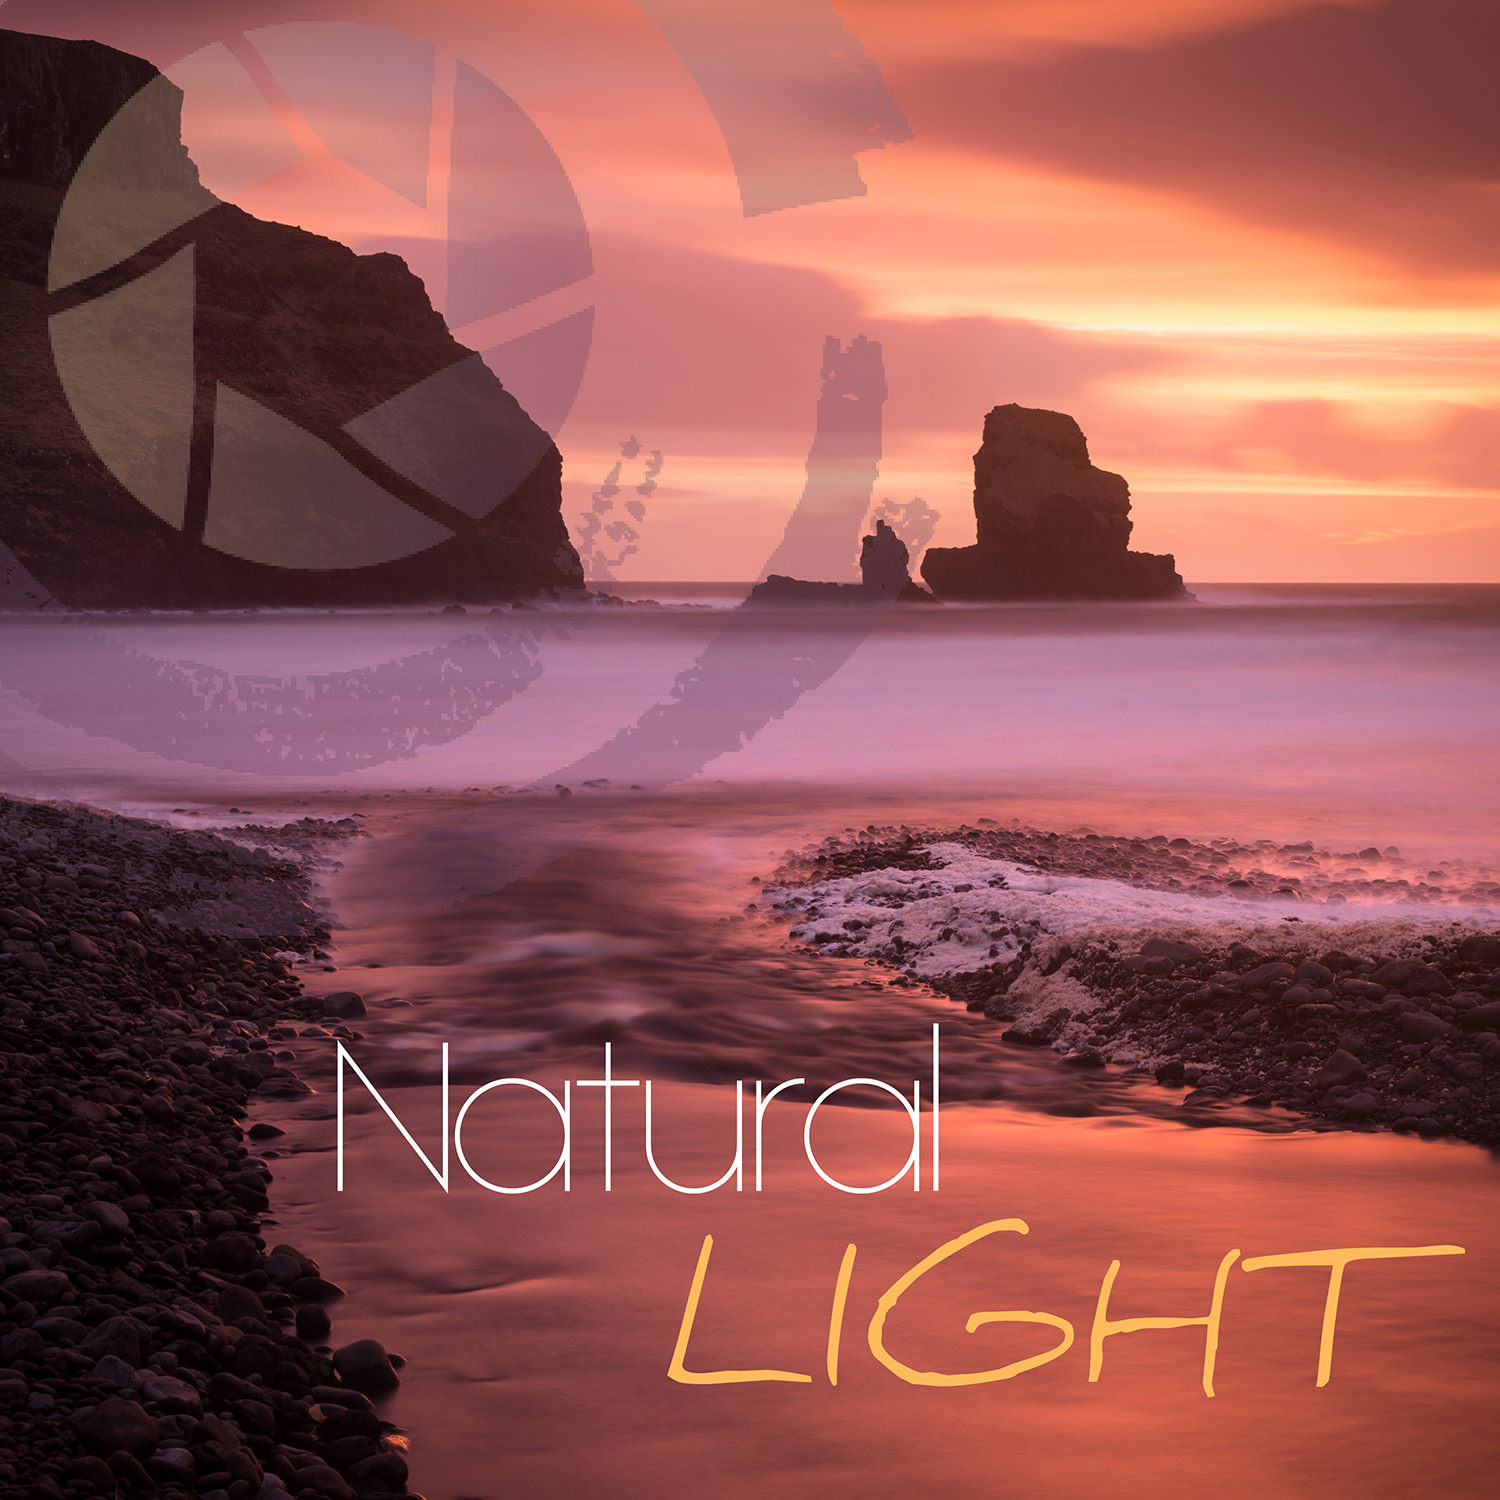 4. NATURAL LIGHT WITH INTENT - WRITTEN CONTENT